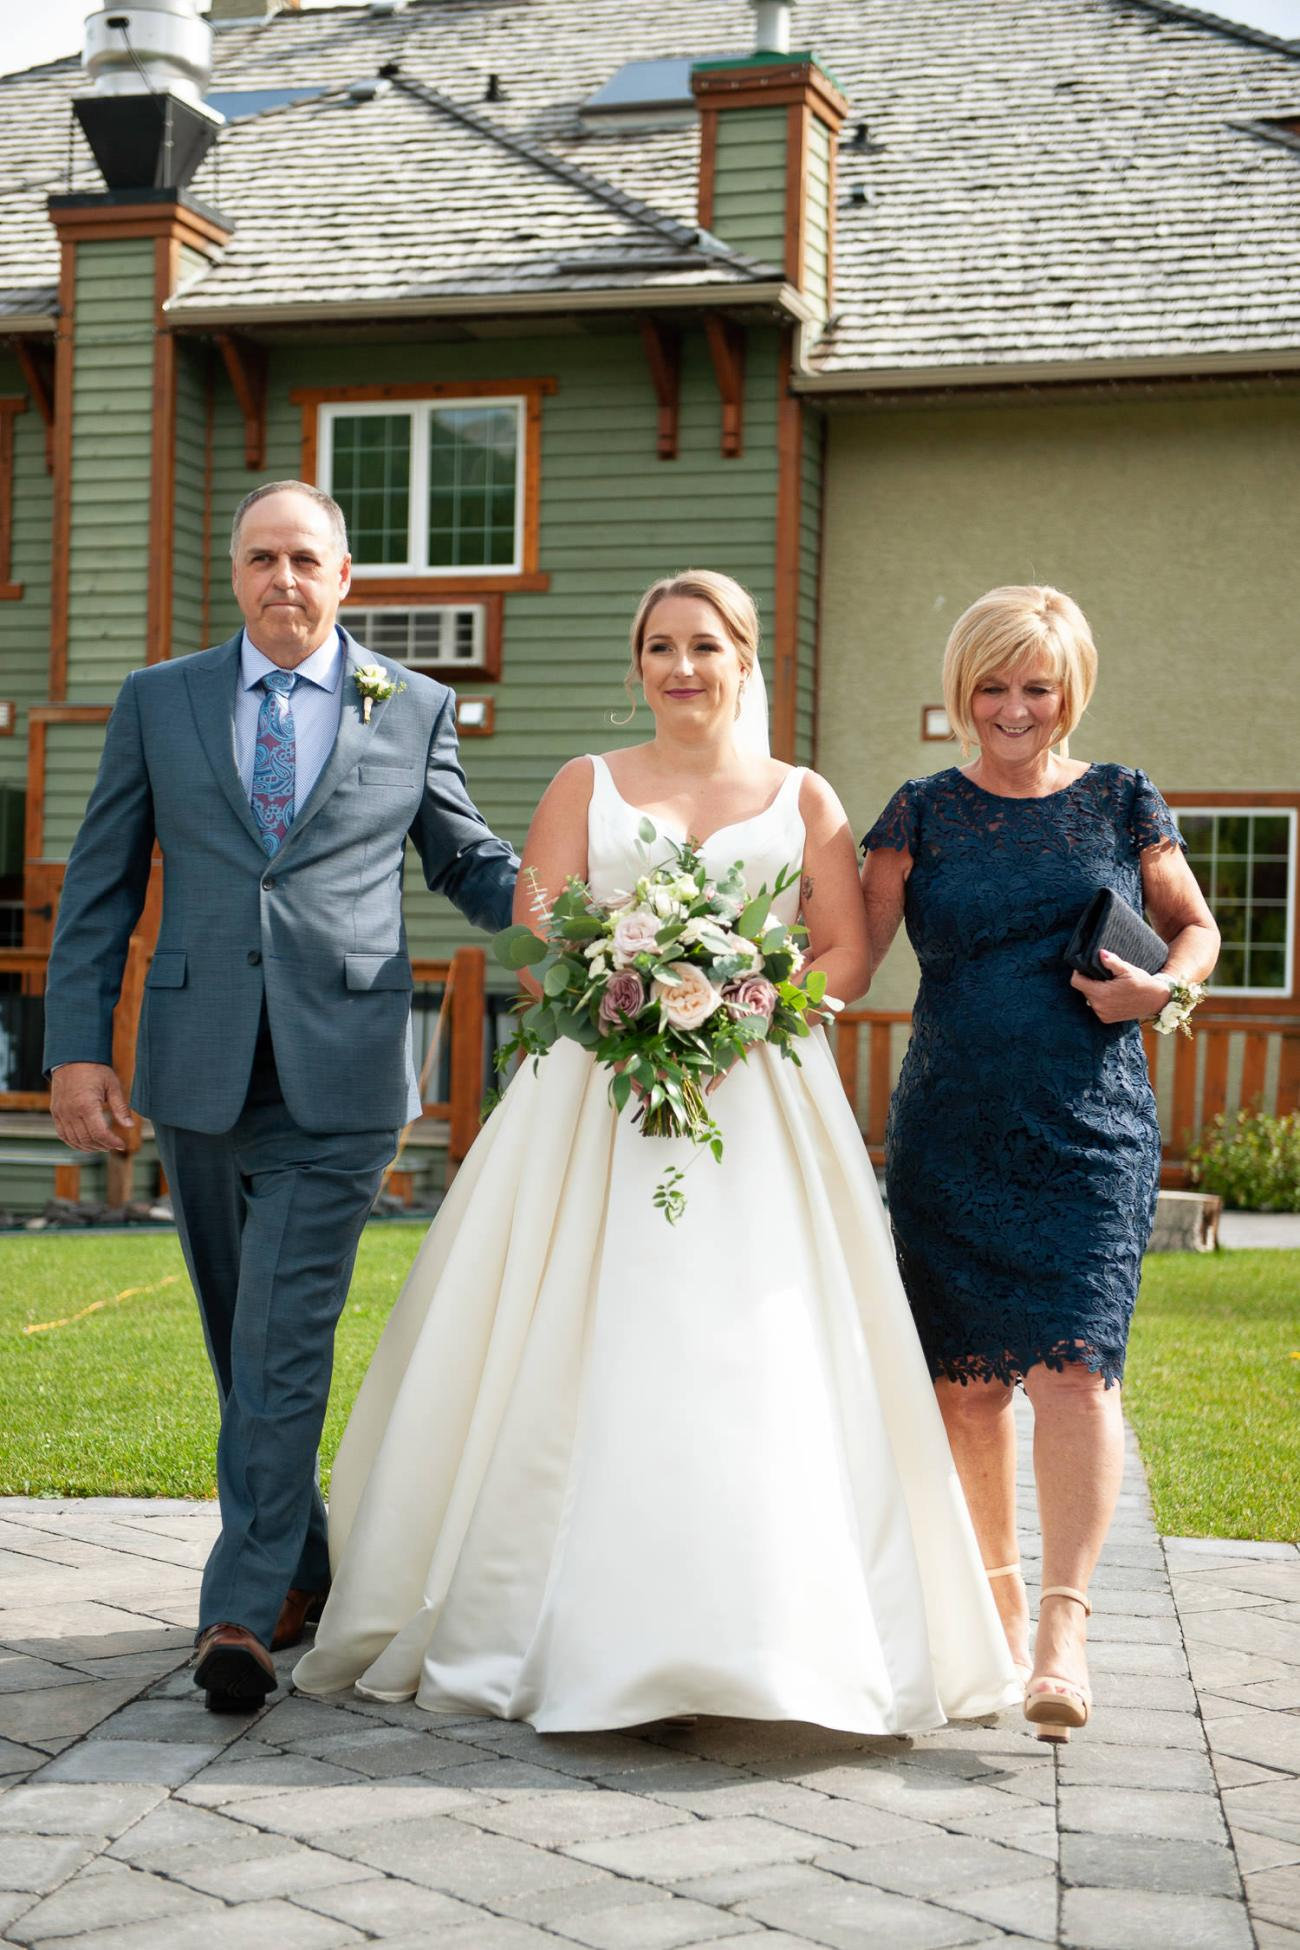 Bride walks down the aisle at her Creekside Villa wedding captured by Tara Whittaker Photography